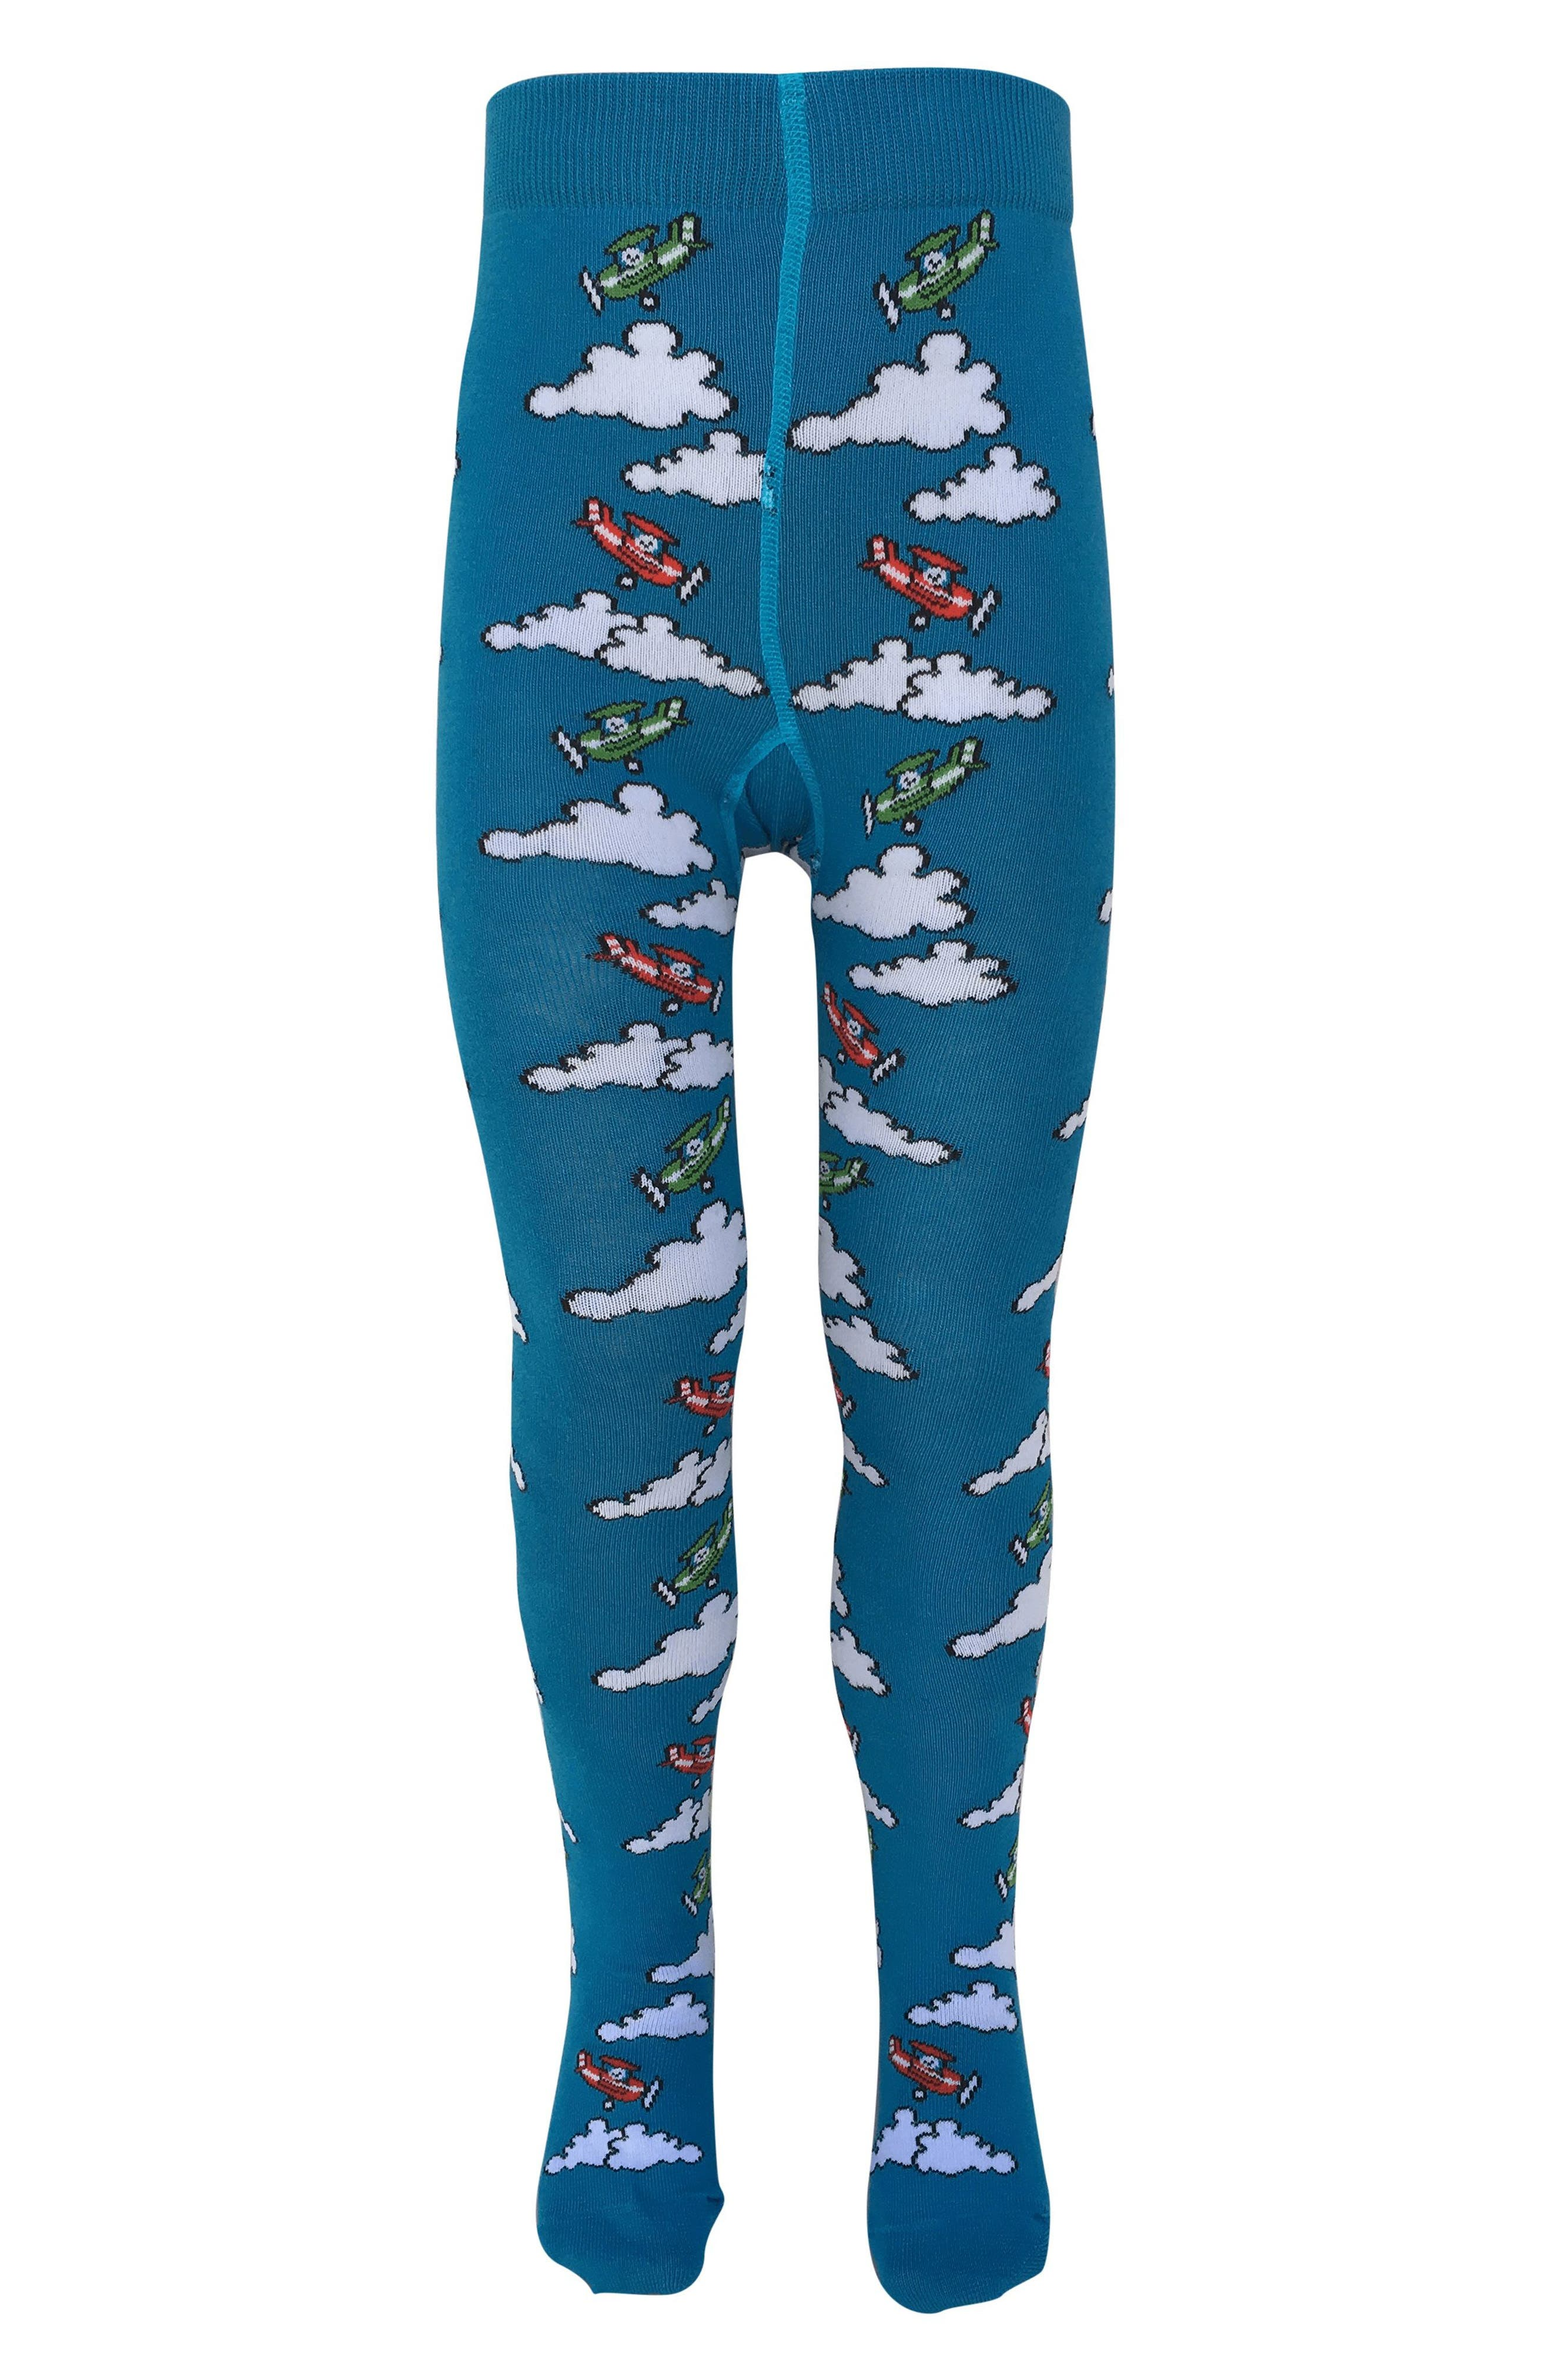 Plane Tights,                         Main,                         color, Mid Blue